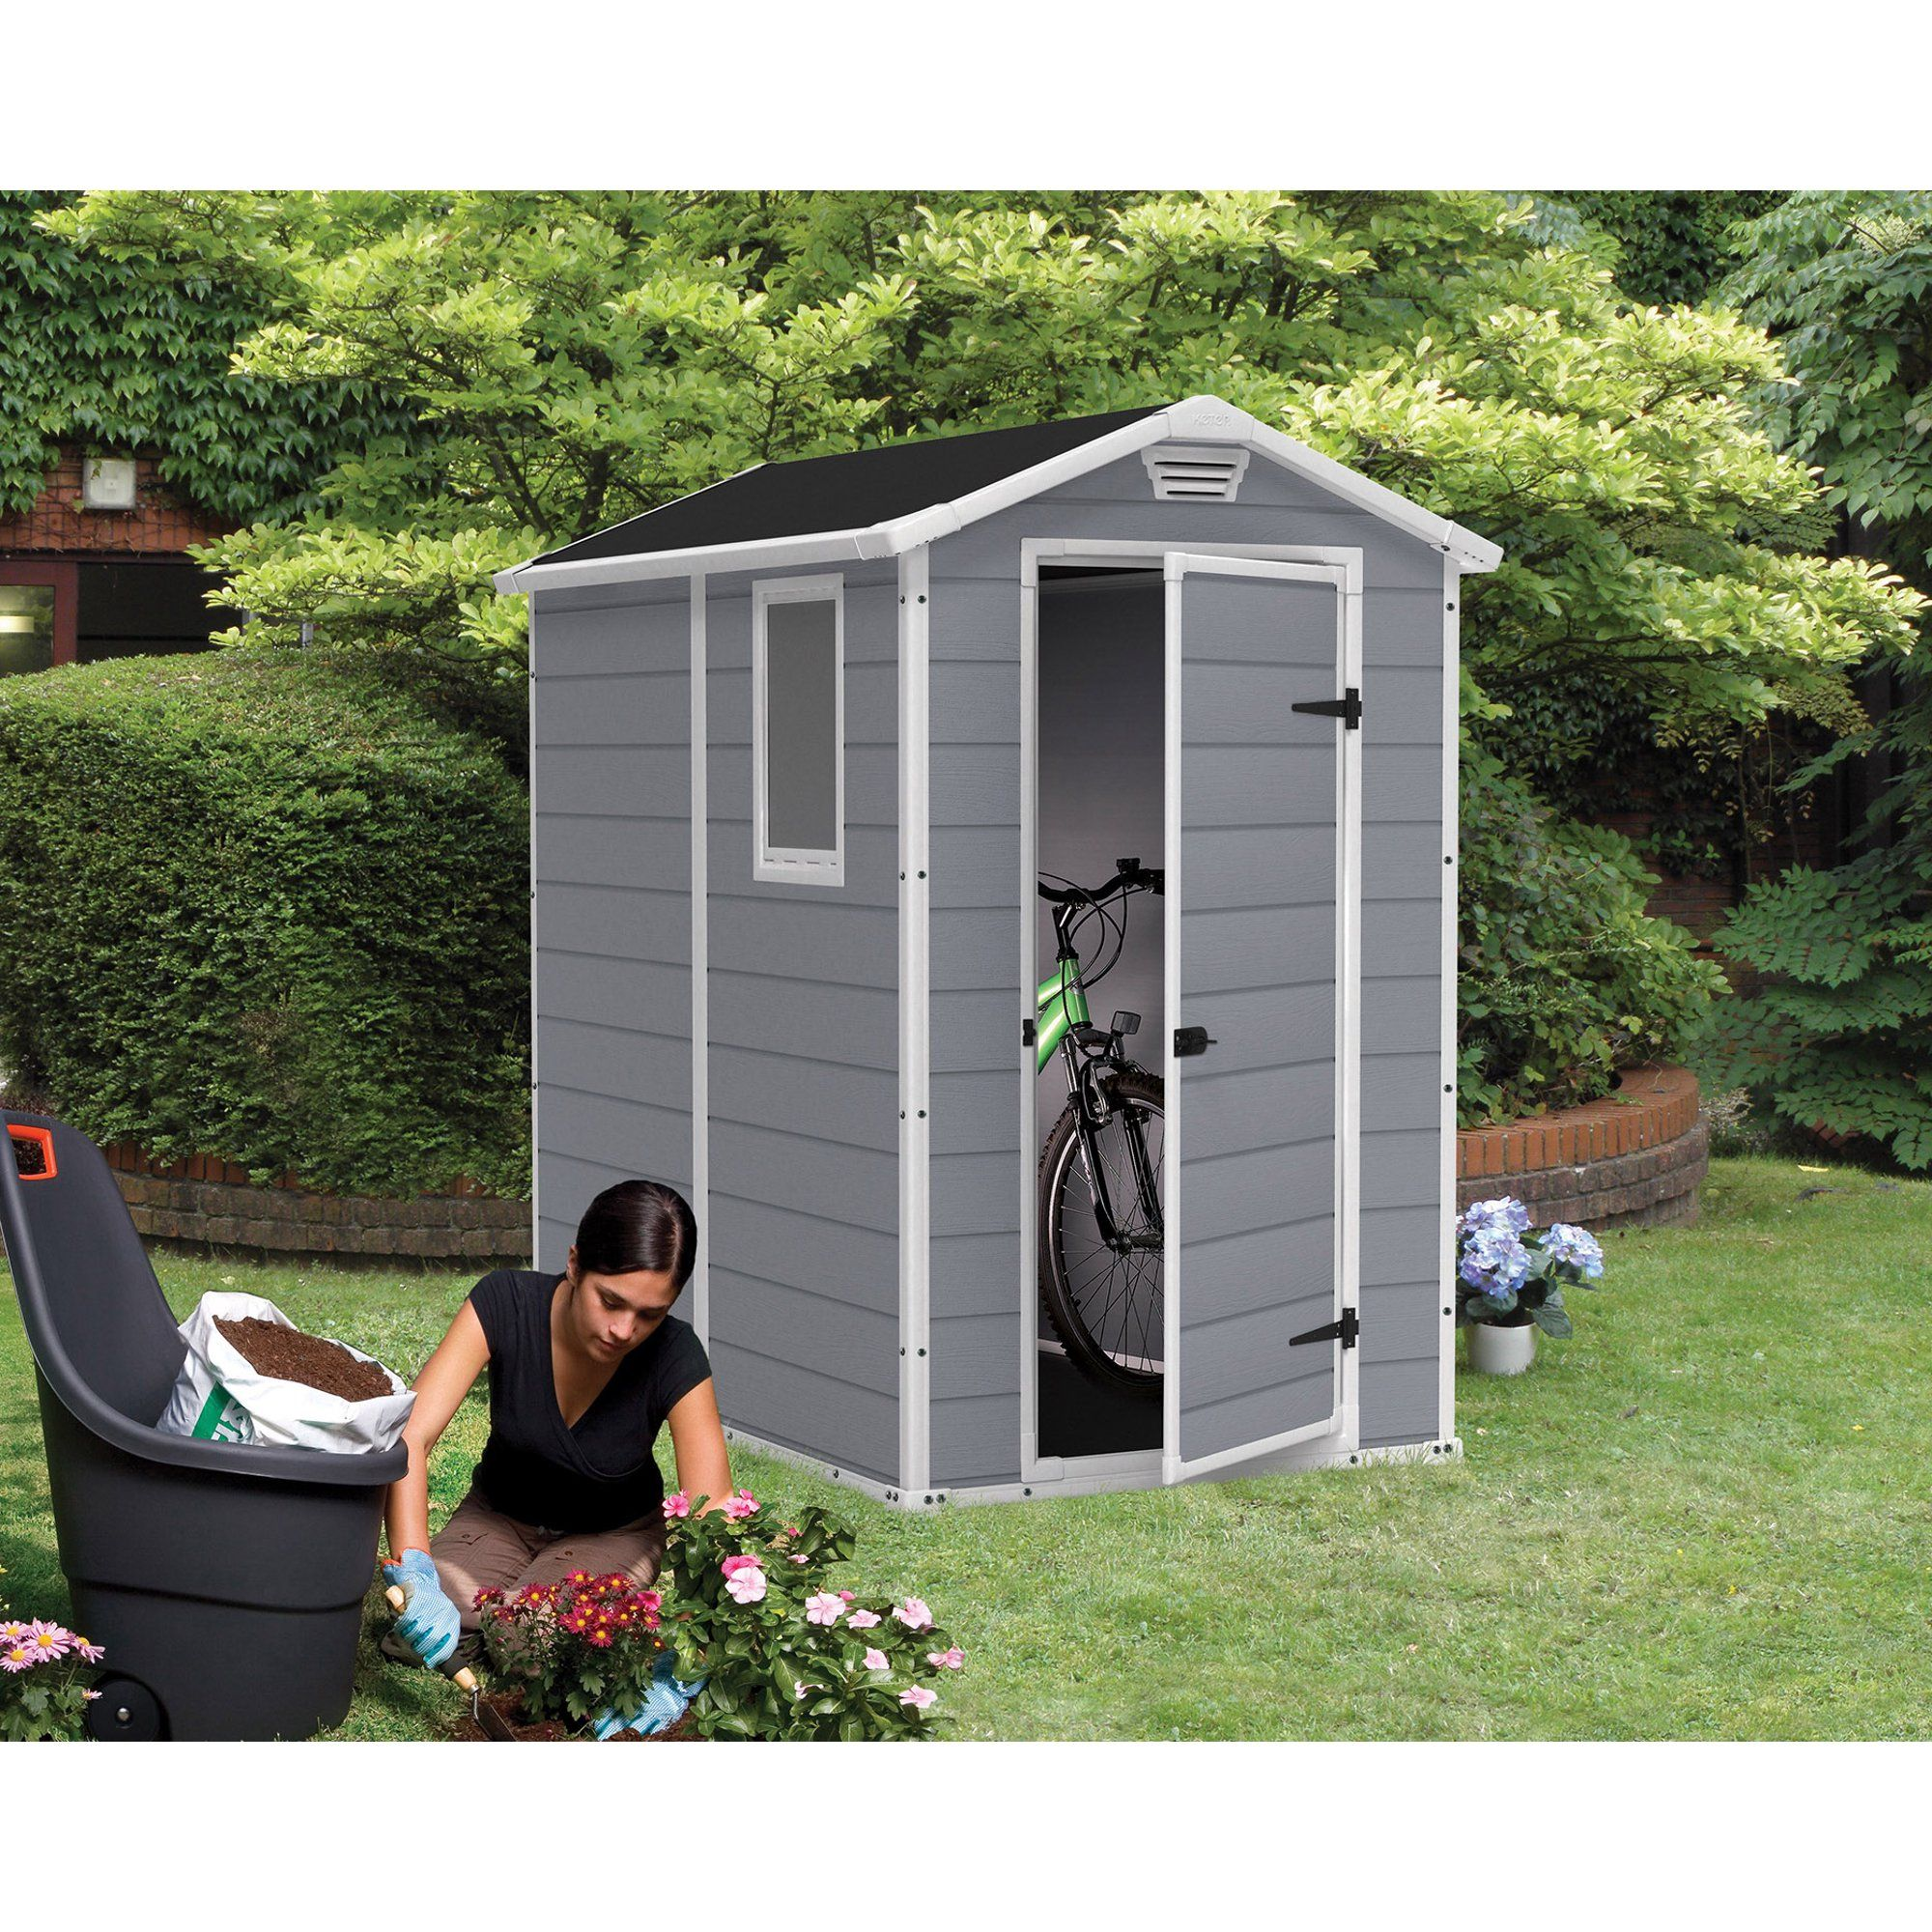 Keter Manor 4 X 6 Resin Storage Shed All Weather Plastic Outdoor Storage Gray White Walmart Com In 2021 Resin Outdoor Storage Garden Storage Shed Plastic Sheds